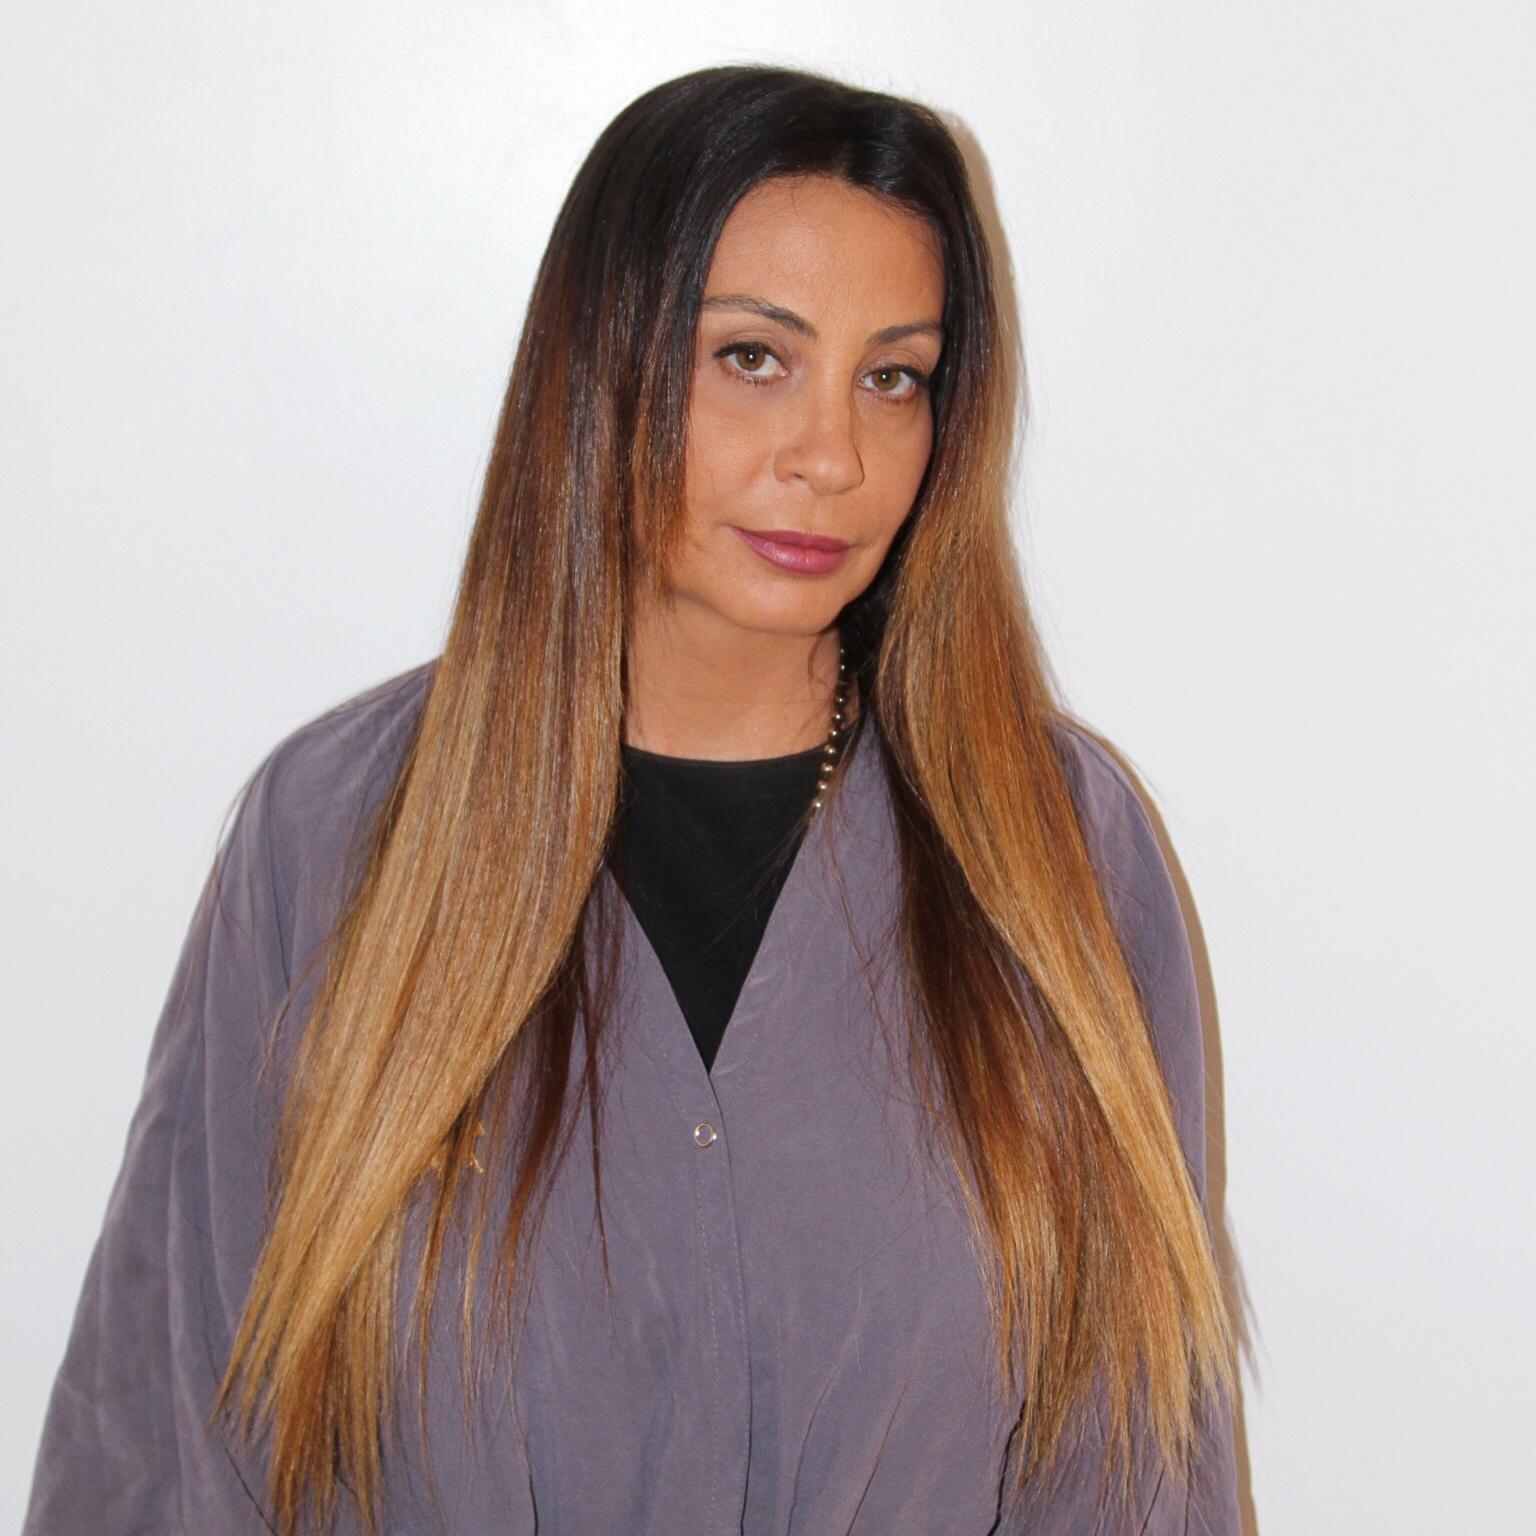 Brunette blonde ramirez tran salon for 3 brunettes and a blonde salon